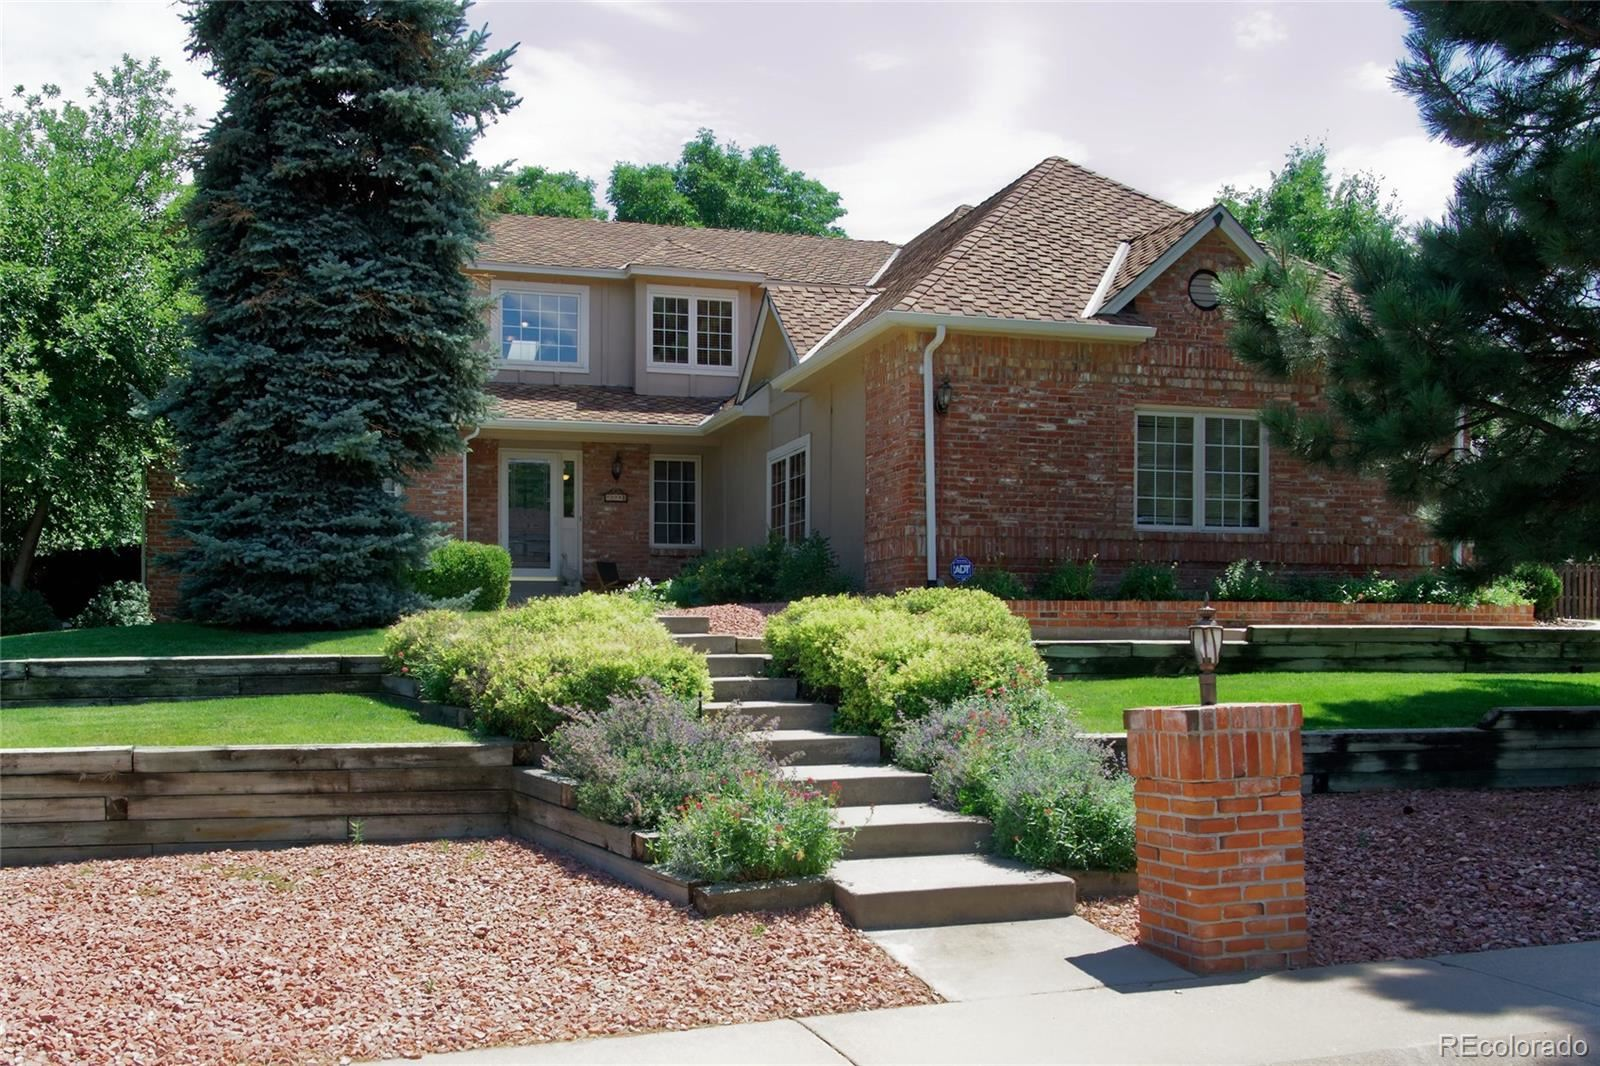 7780 S Lakeview Street, Littleton, CO 80120 - #: 5788745